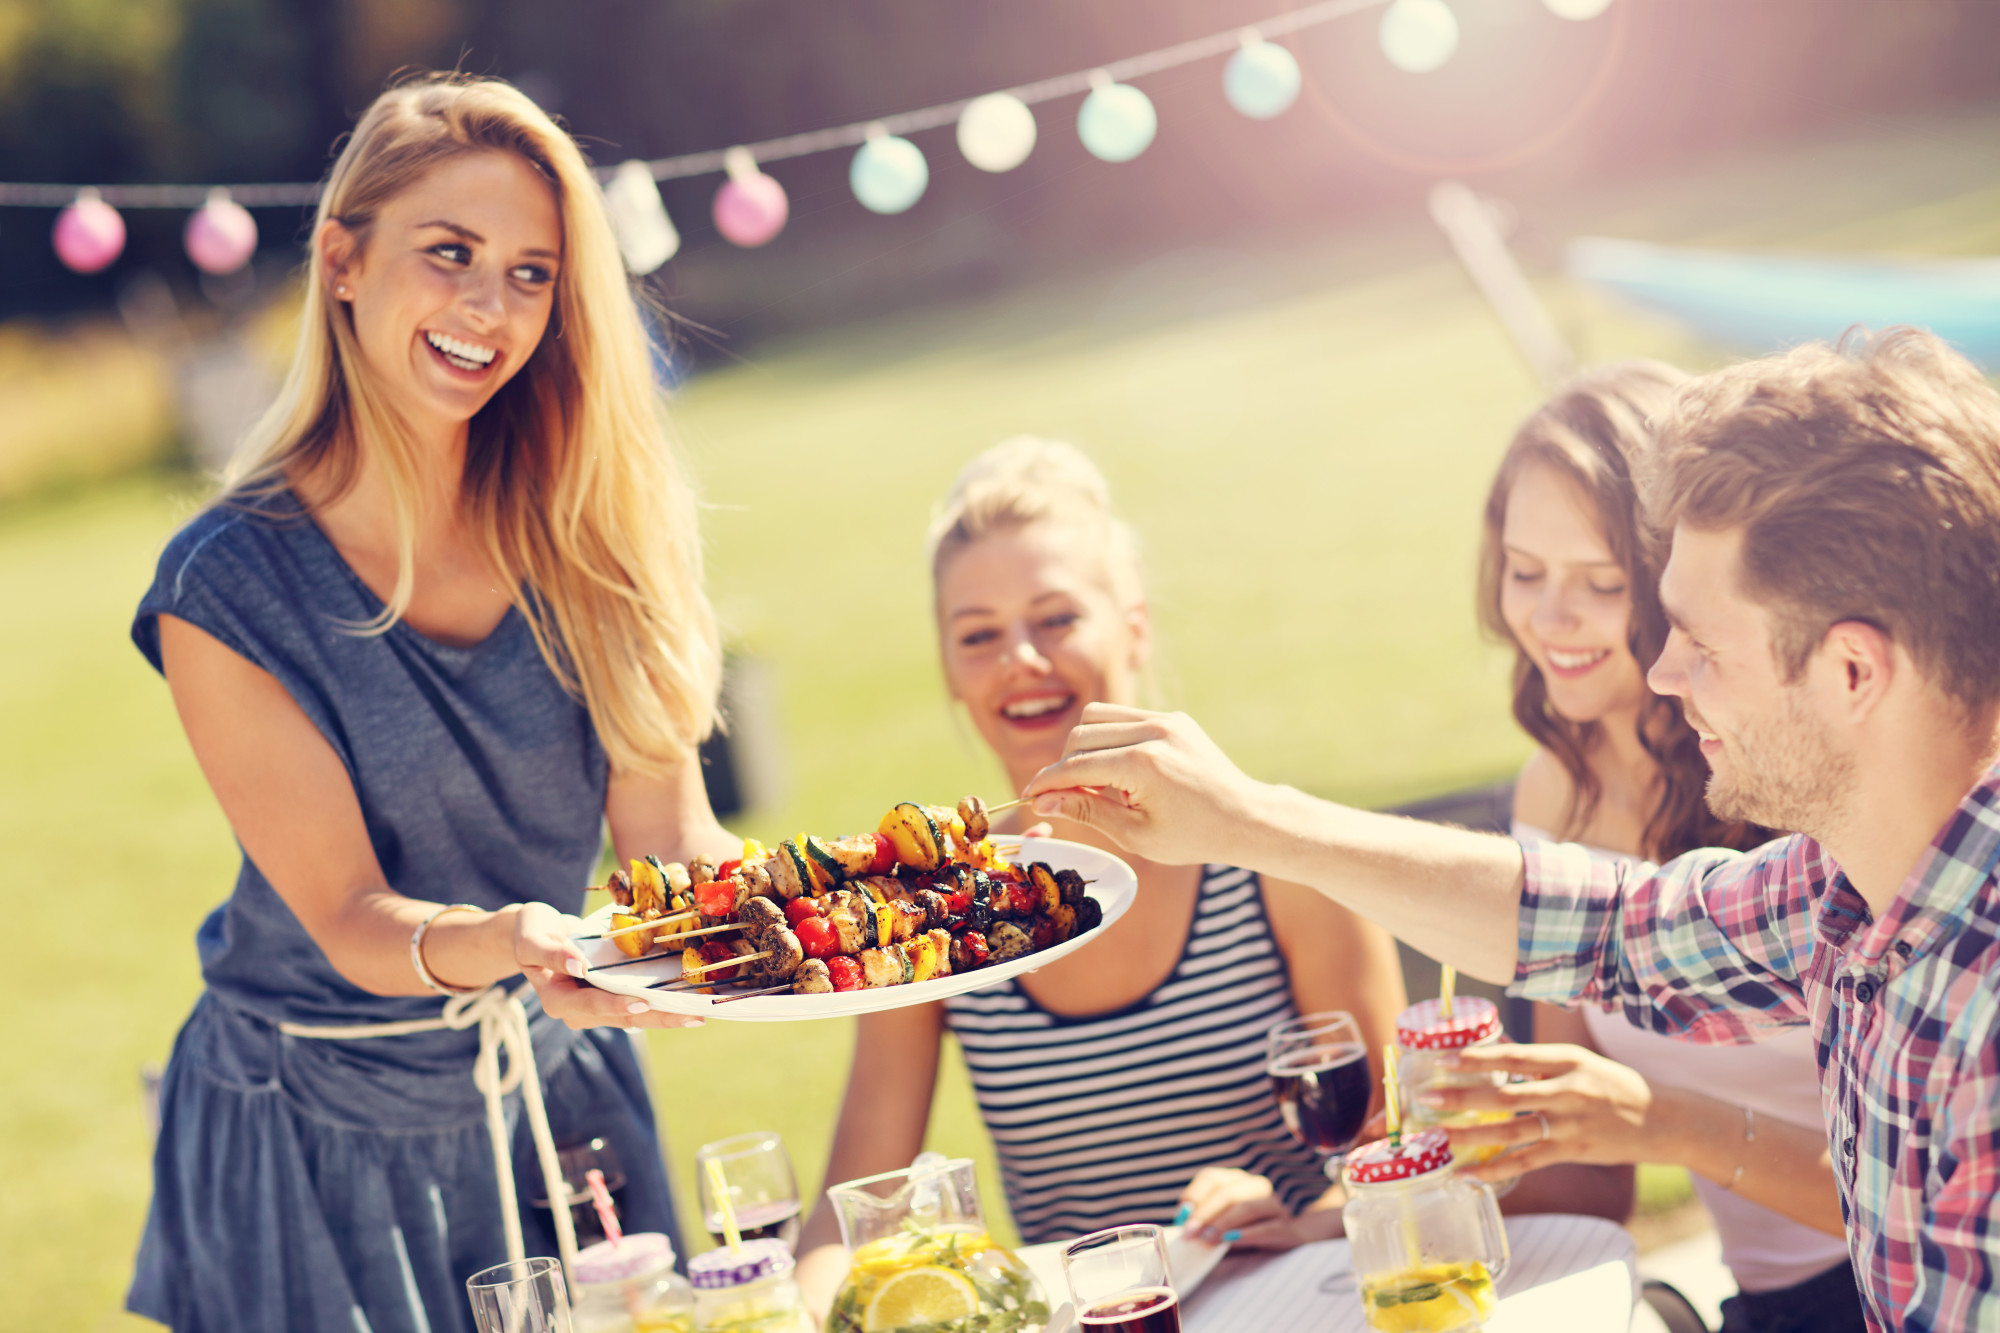 How to Plan and Host the Ultimate Backyard Party